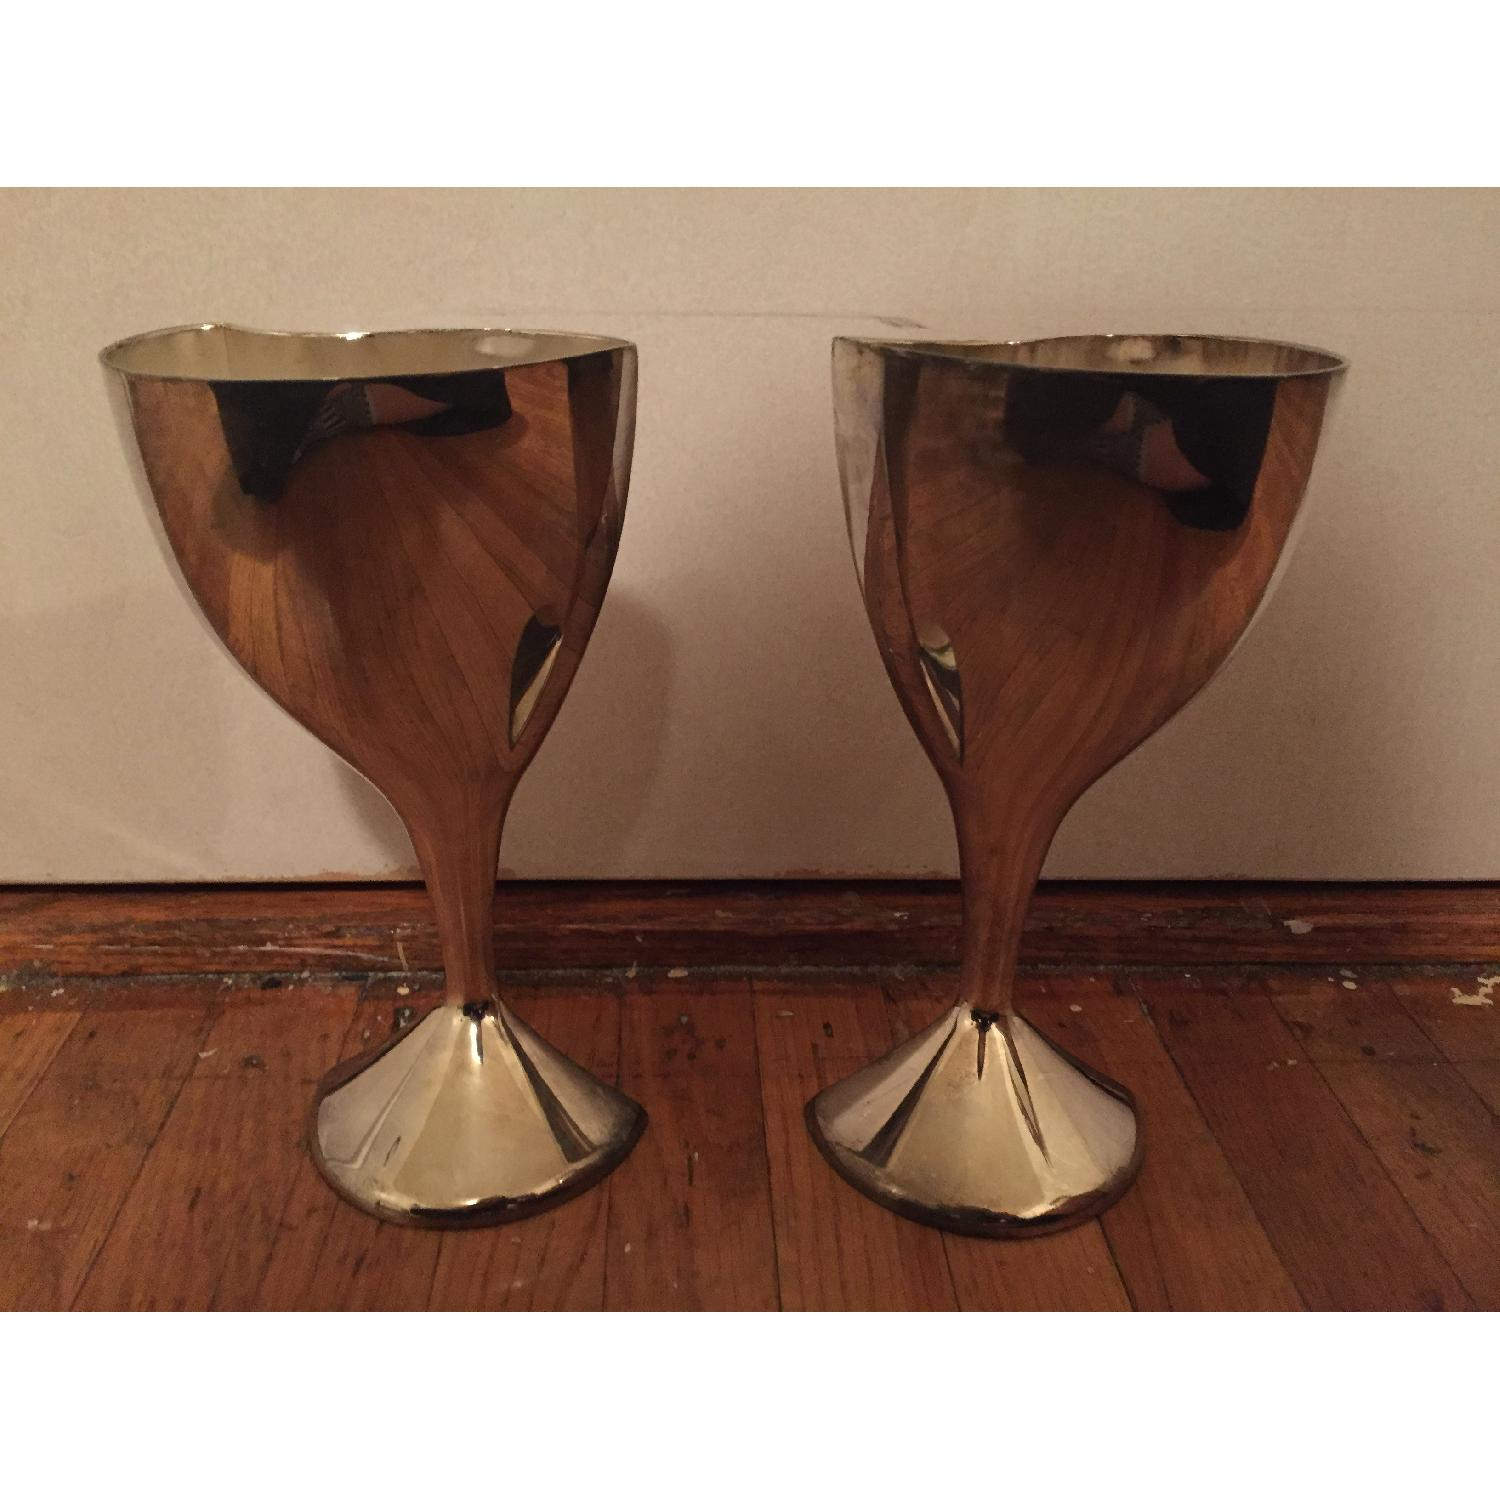 Silver Cups - image-1